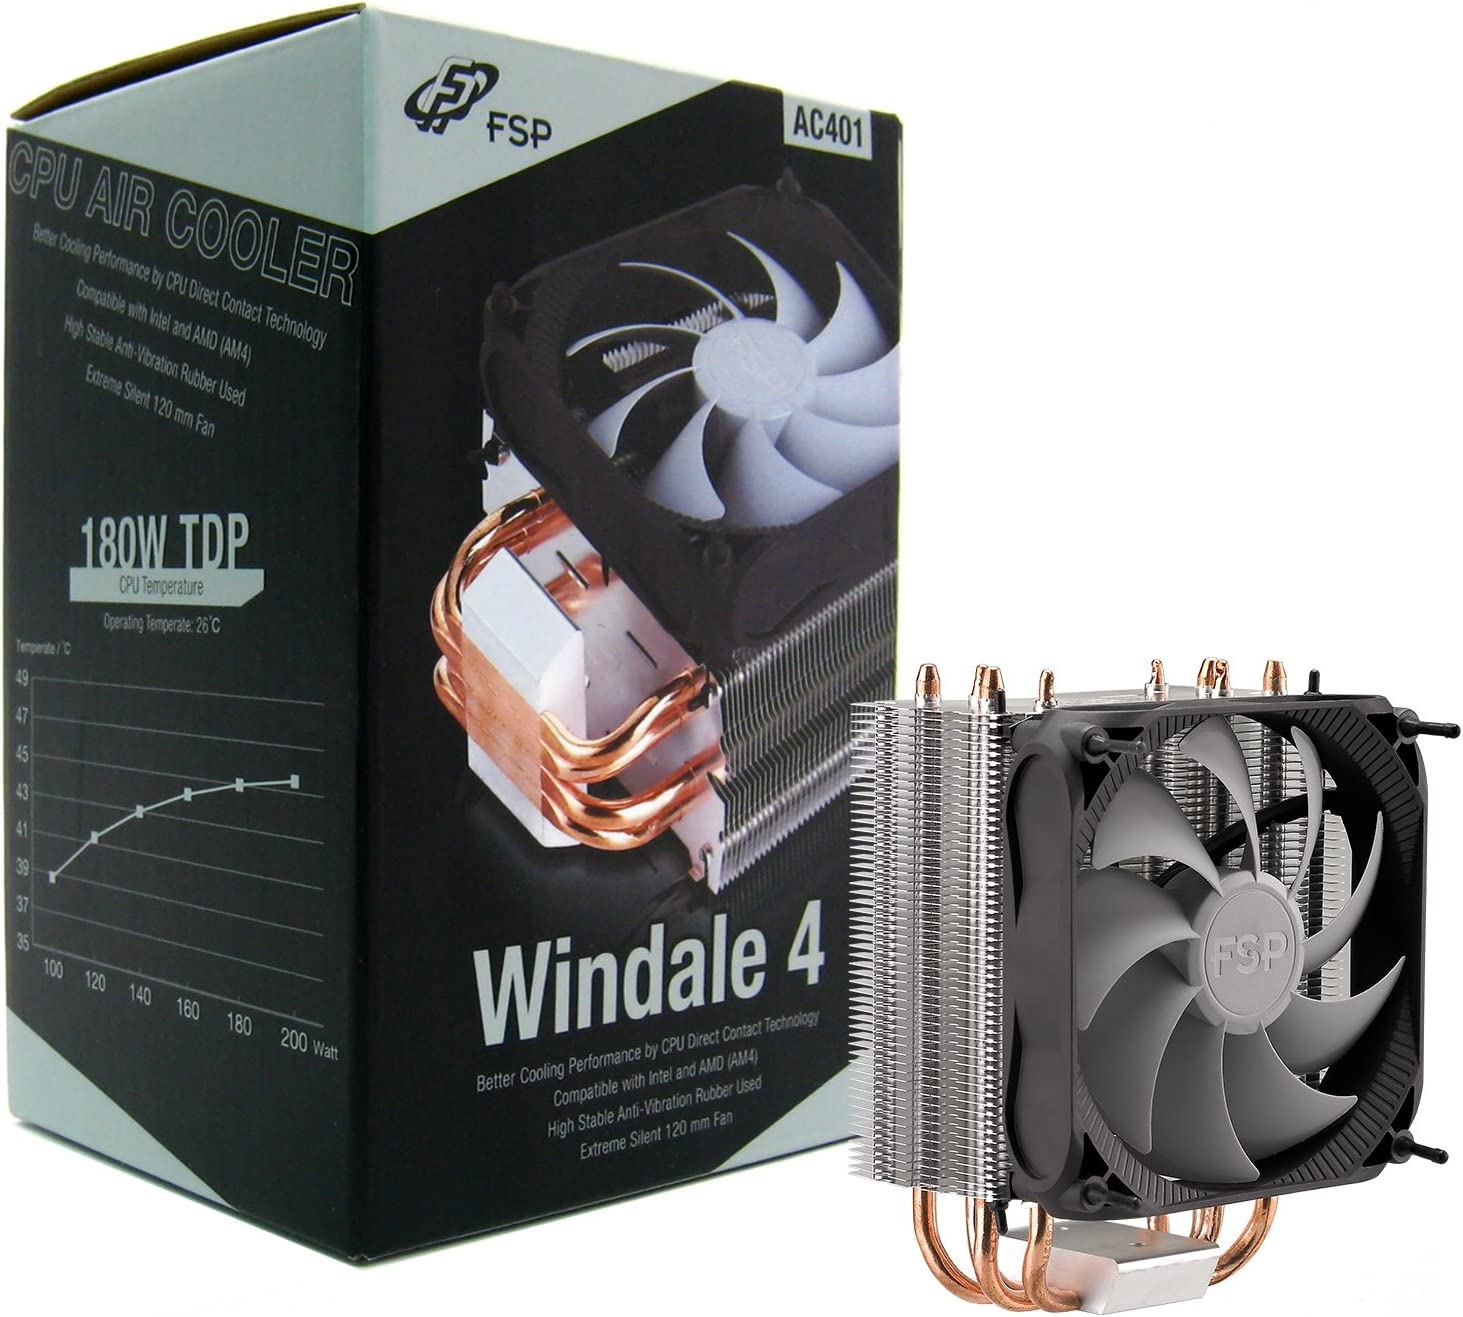 FSP Windale 4 CPU Cooler 4 Direct Contact Heatpipes 6mm Aluminum Alloy with 120mm PWM Fan (AC401)